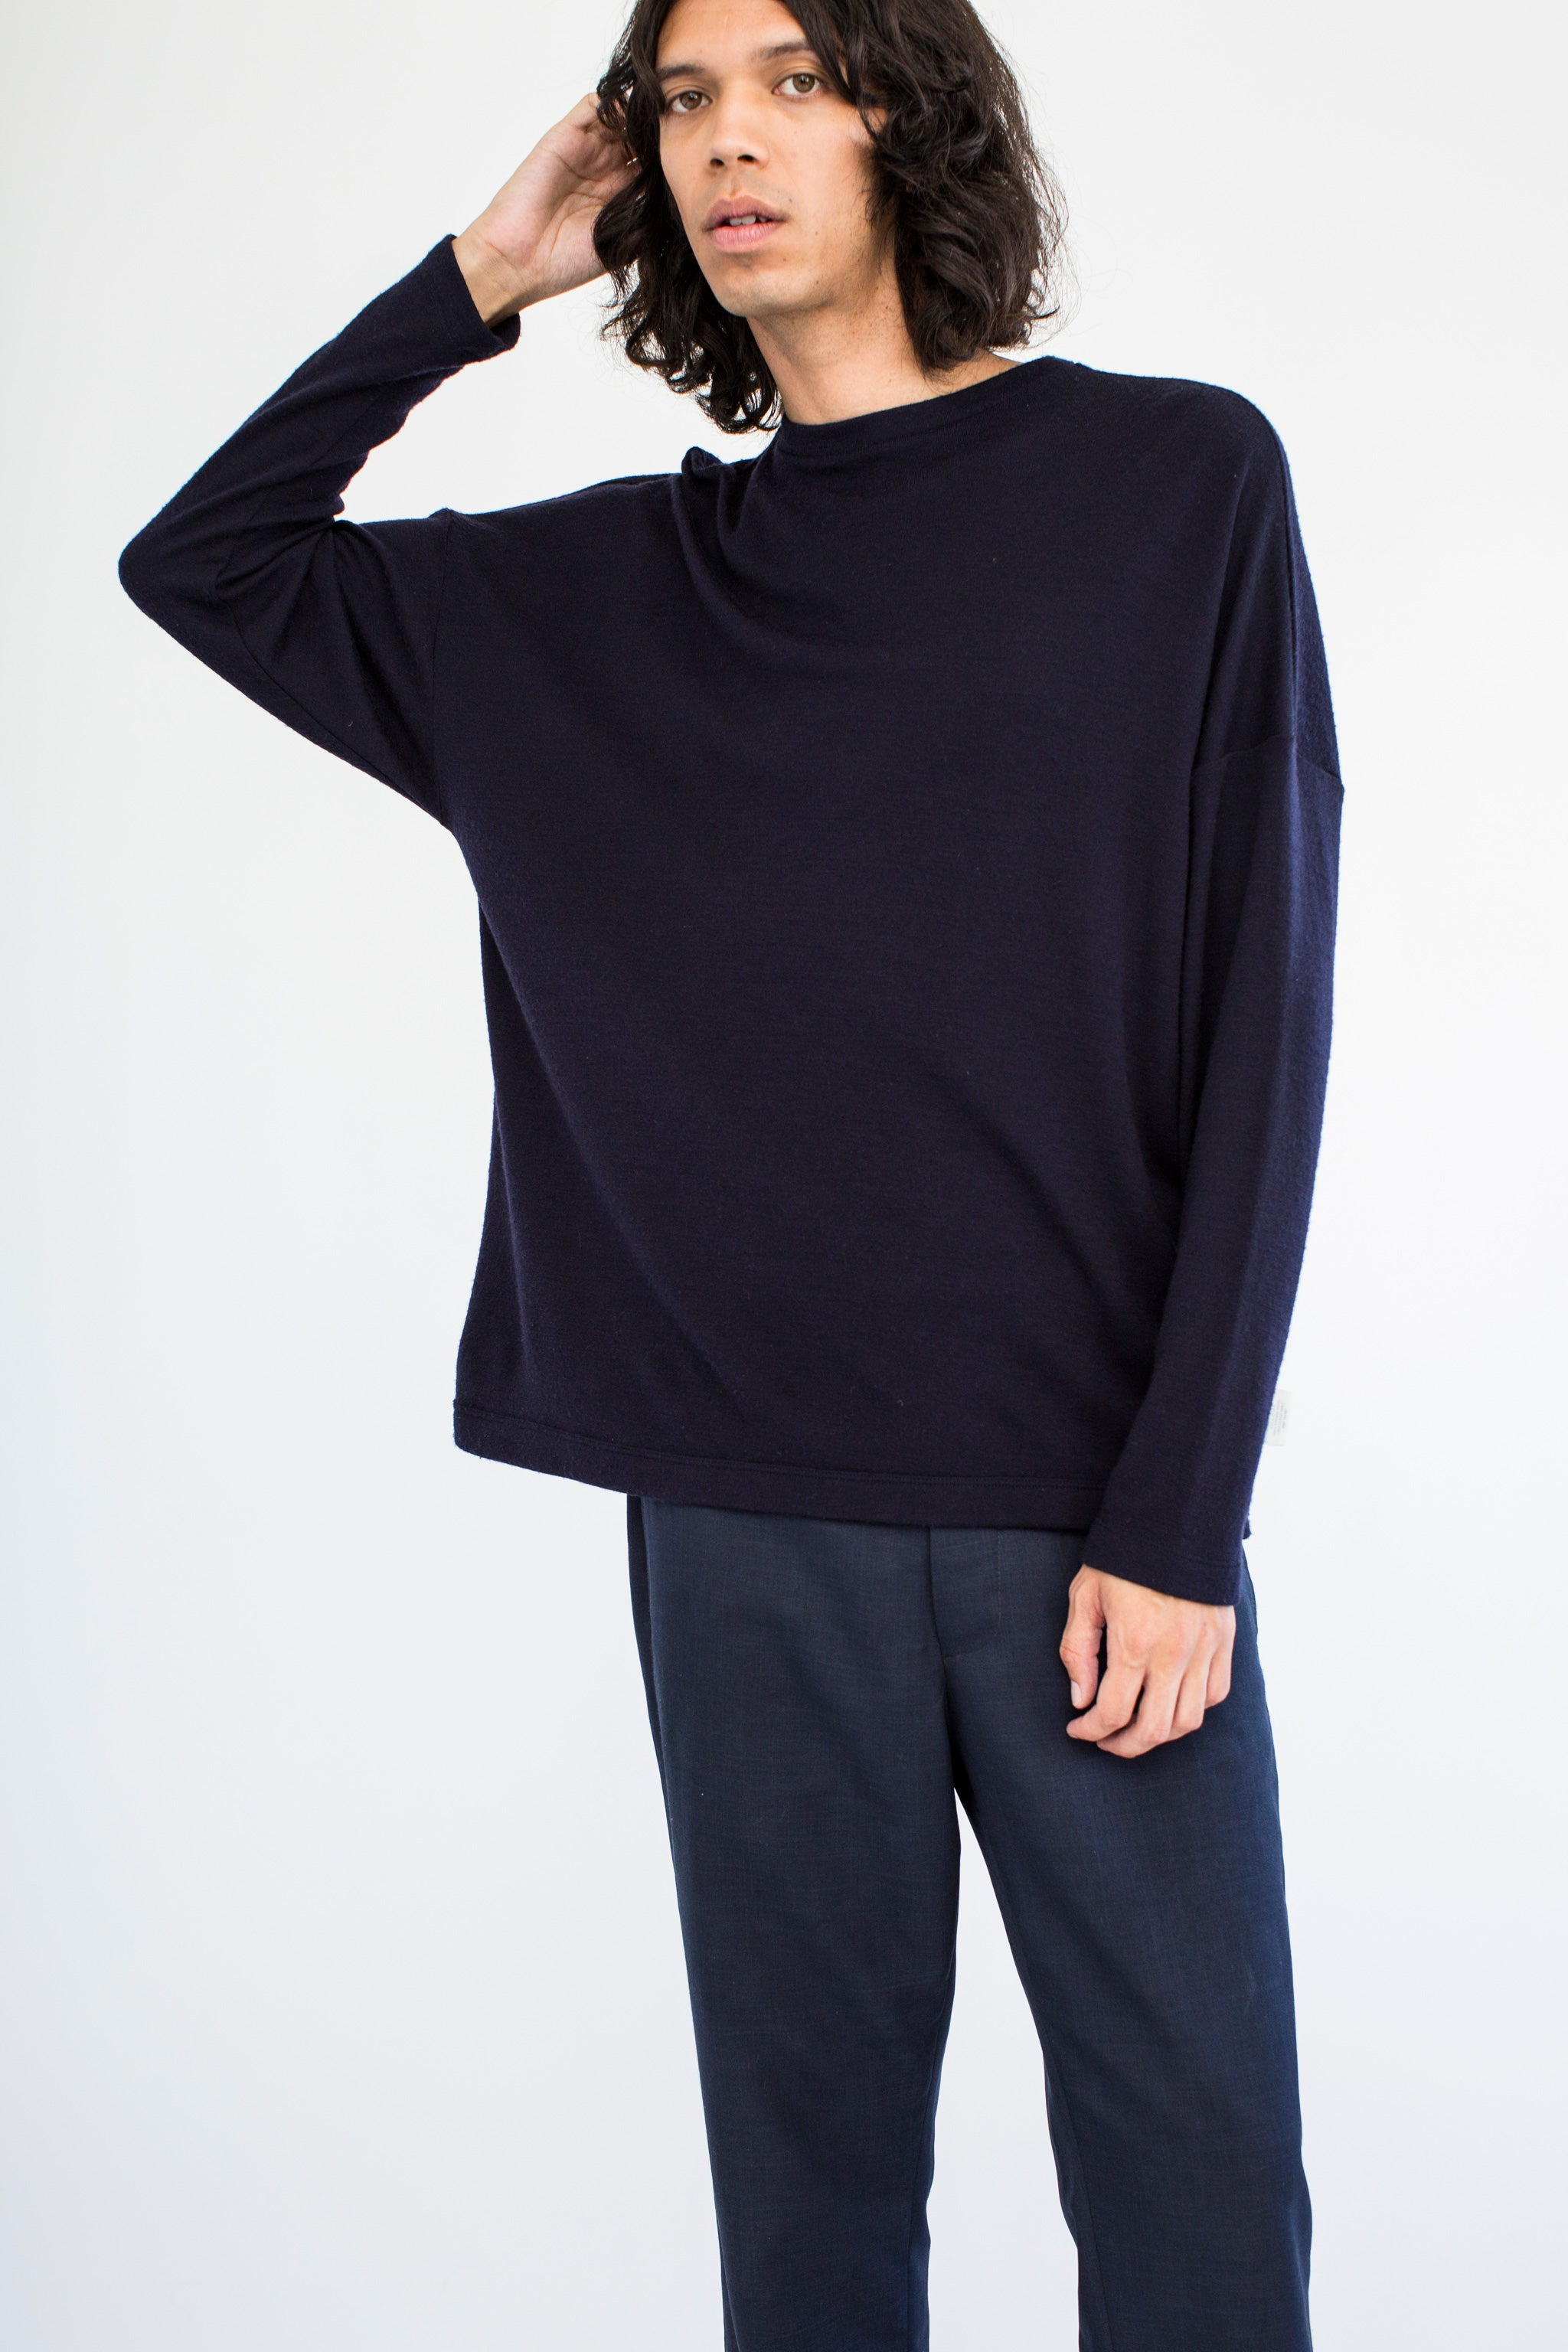 Merino Herder High Neck